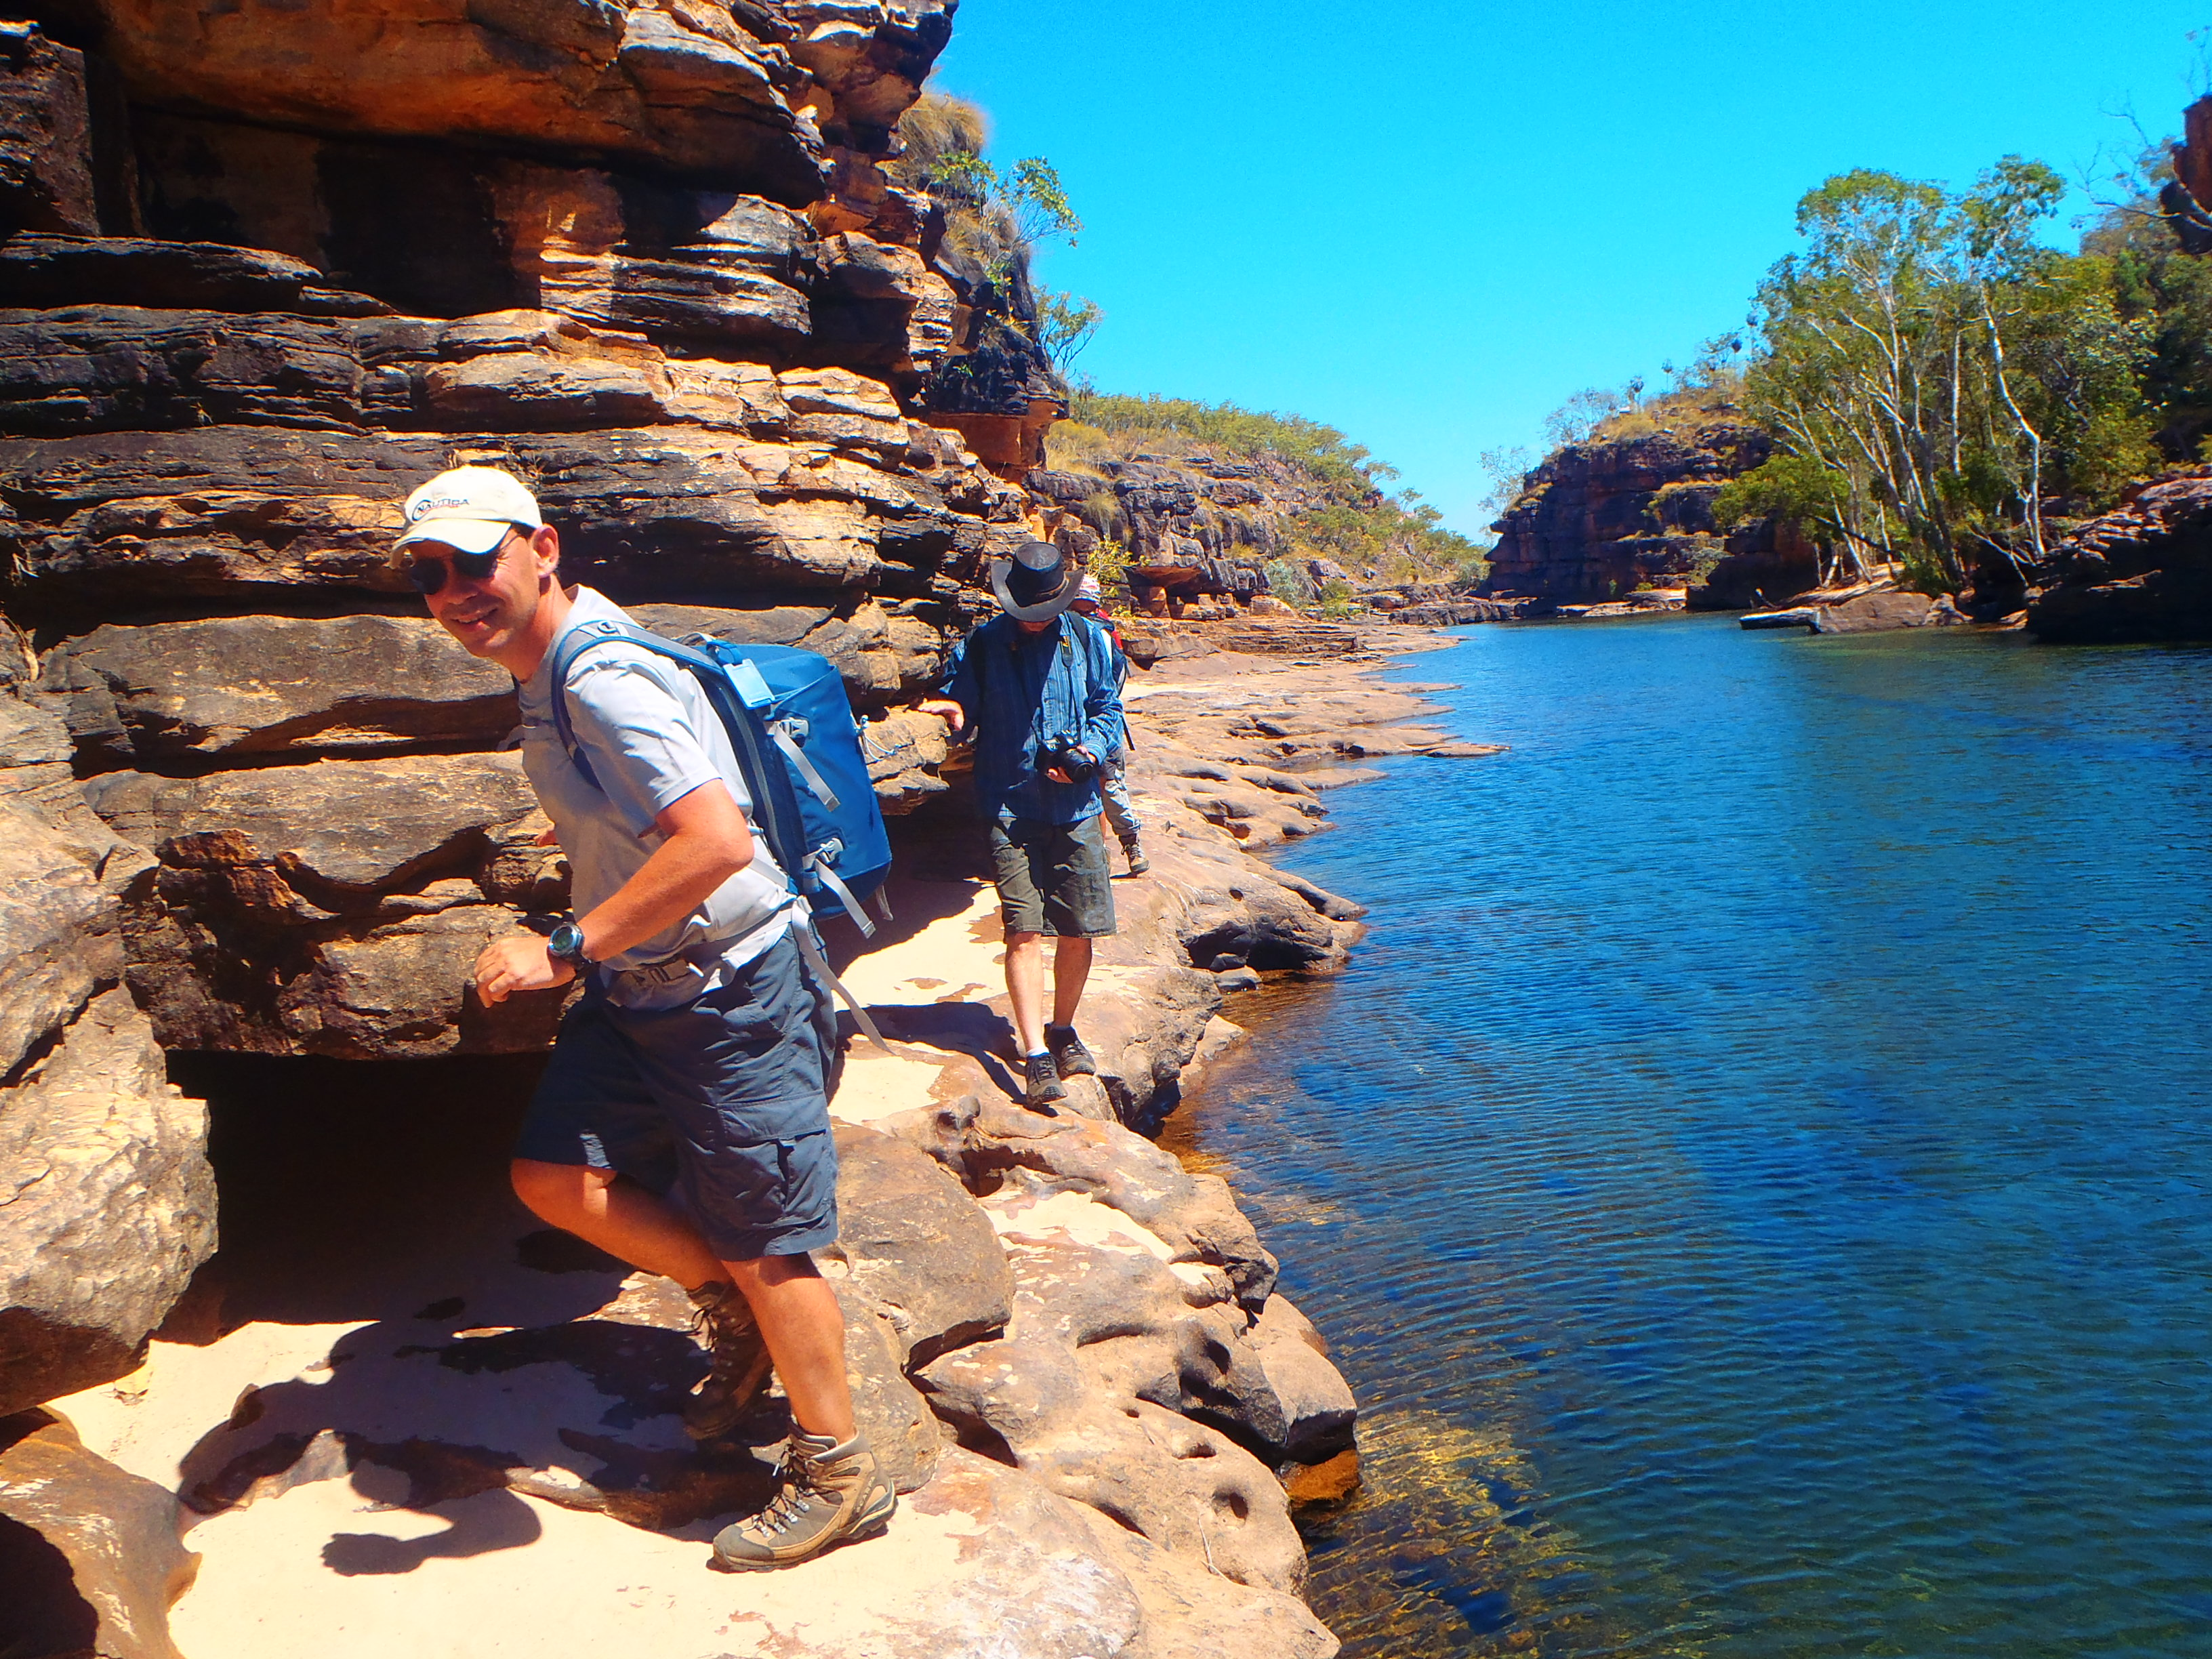 5 DAY 4WD KAKADU/ KOOLPIN SAFARI